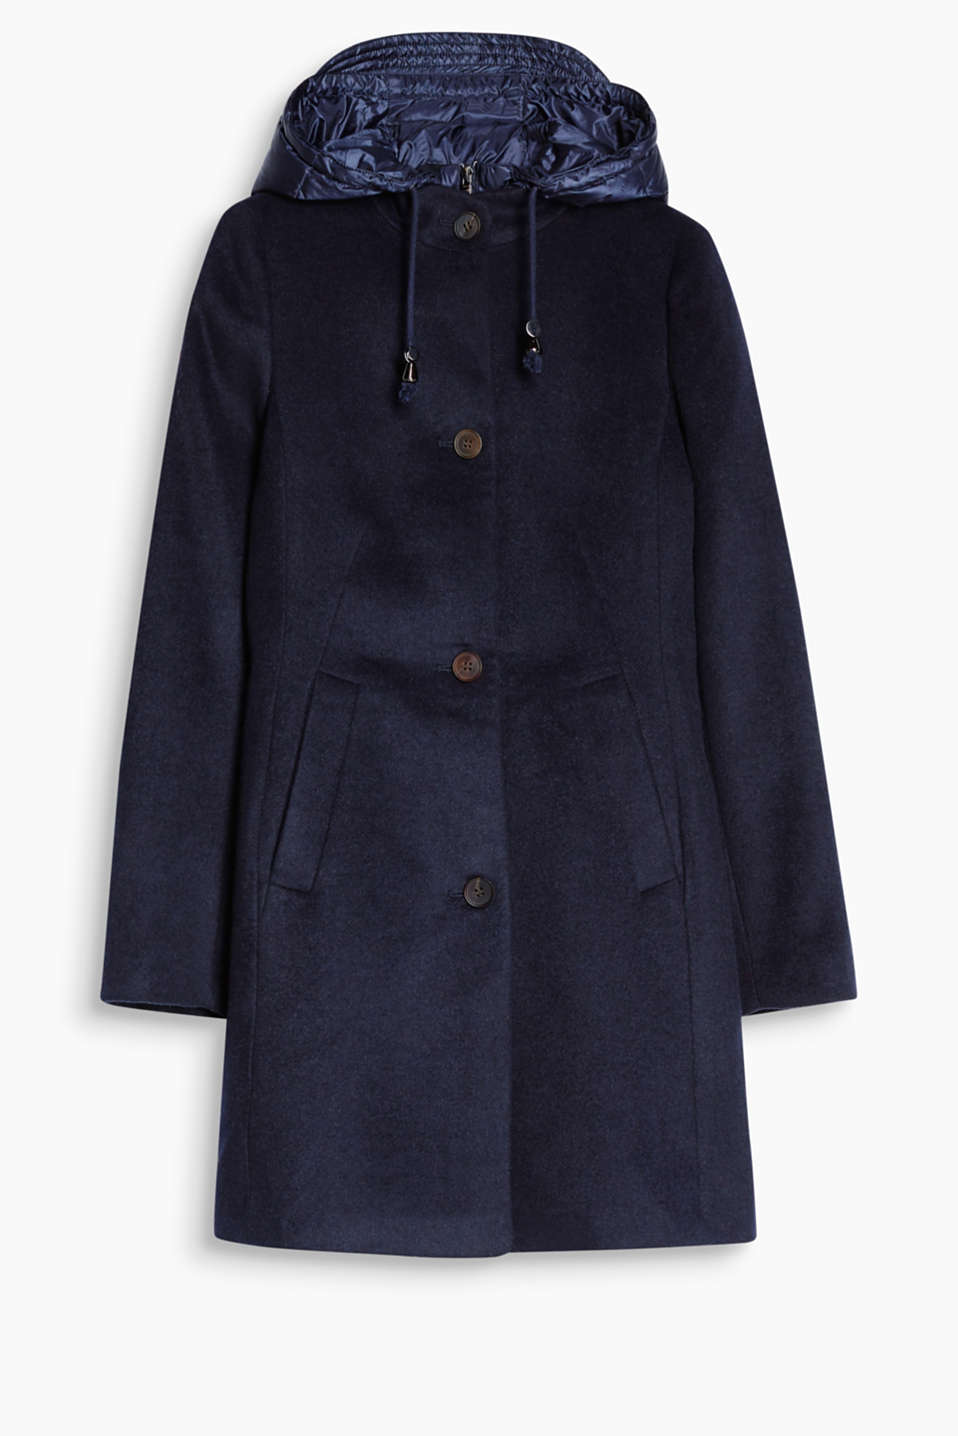 Sporty chic: With its two-in-one look with integrated down details, this coat strikes the perfect fashionable balance!